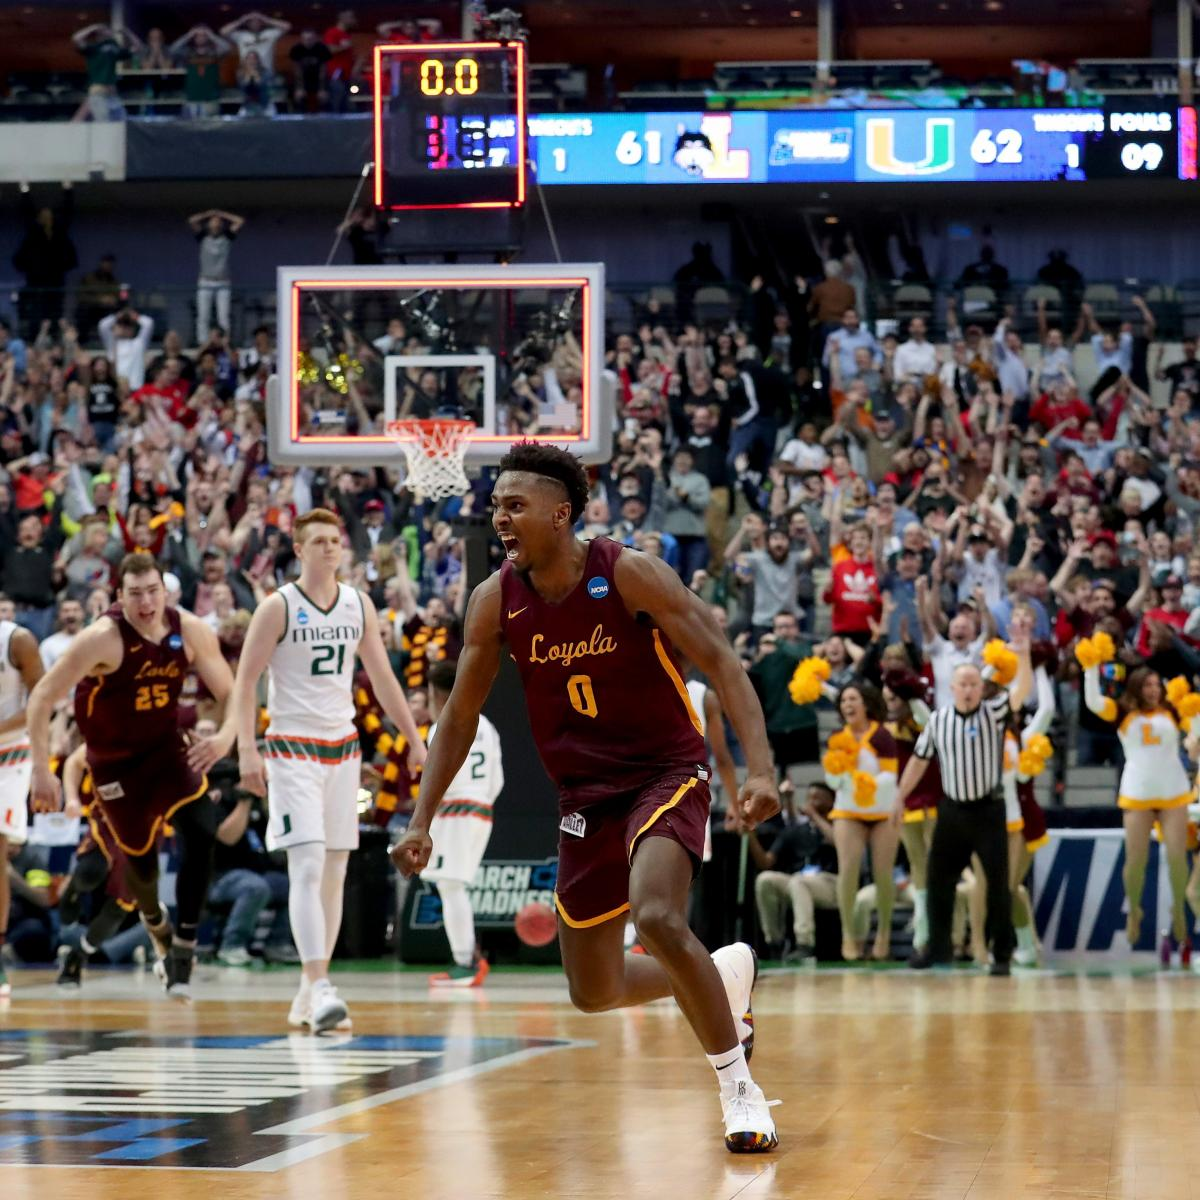 March Madness 2018: Bracket Predictions, Odds Tips for Saturday Round 2 Schedule